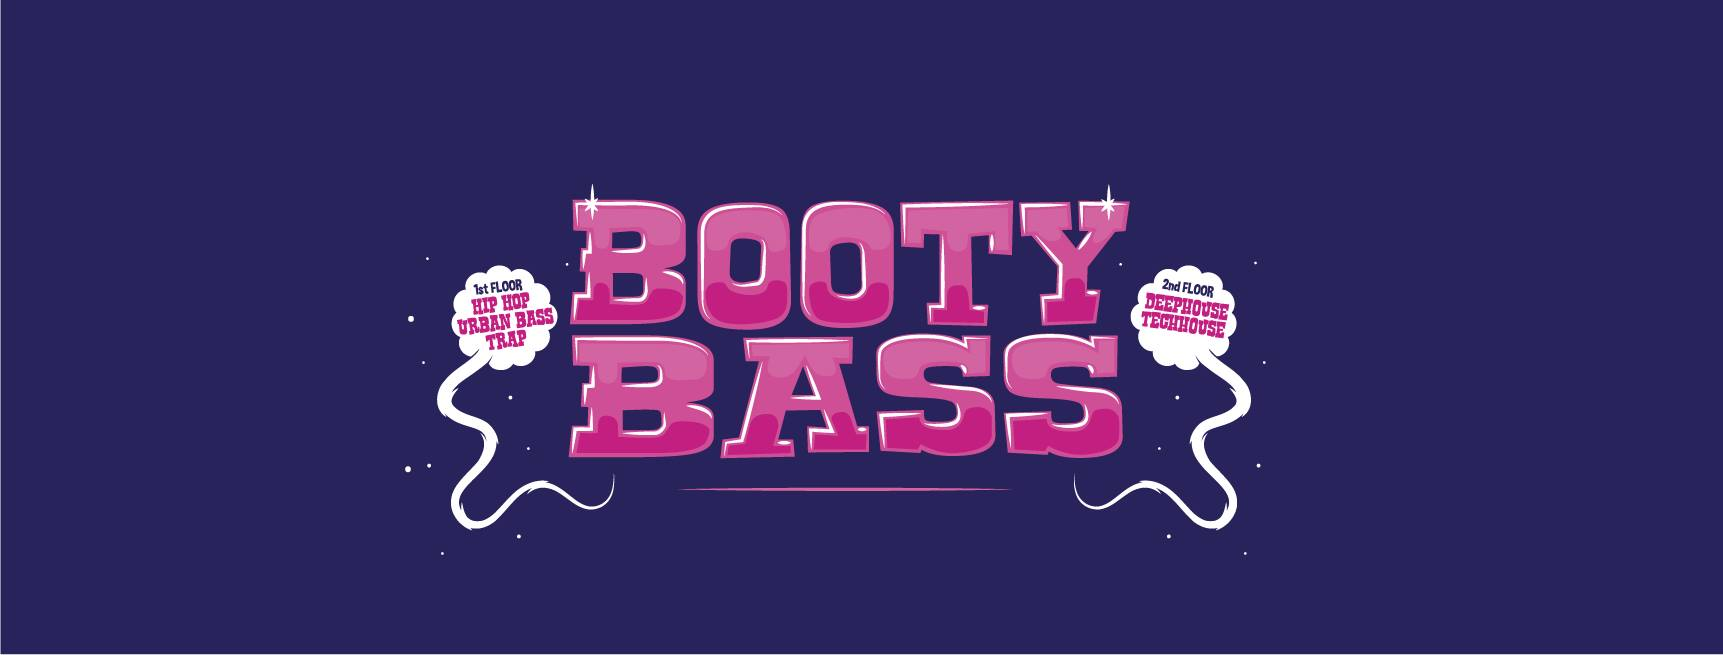 19.1.2019 - Booty Bass [Münster]